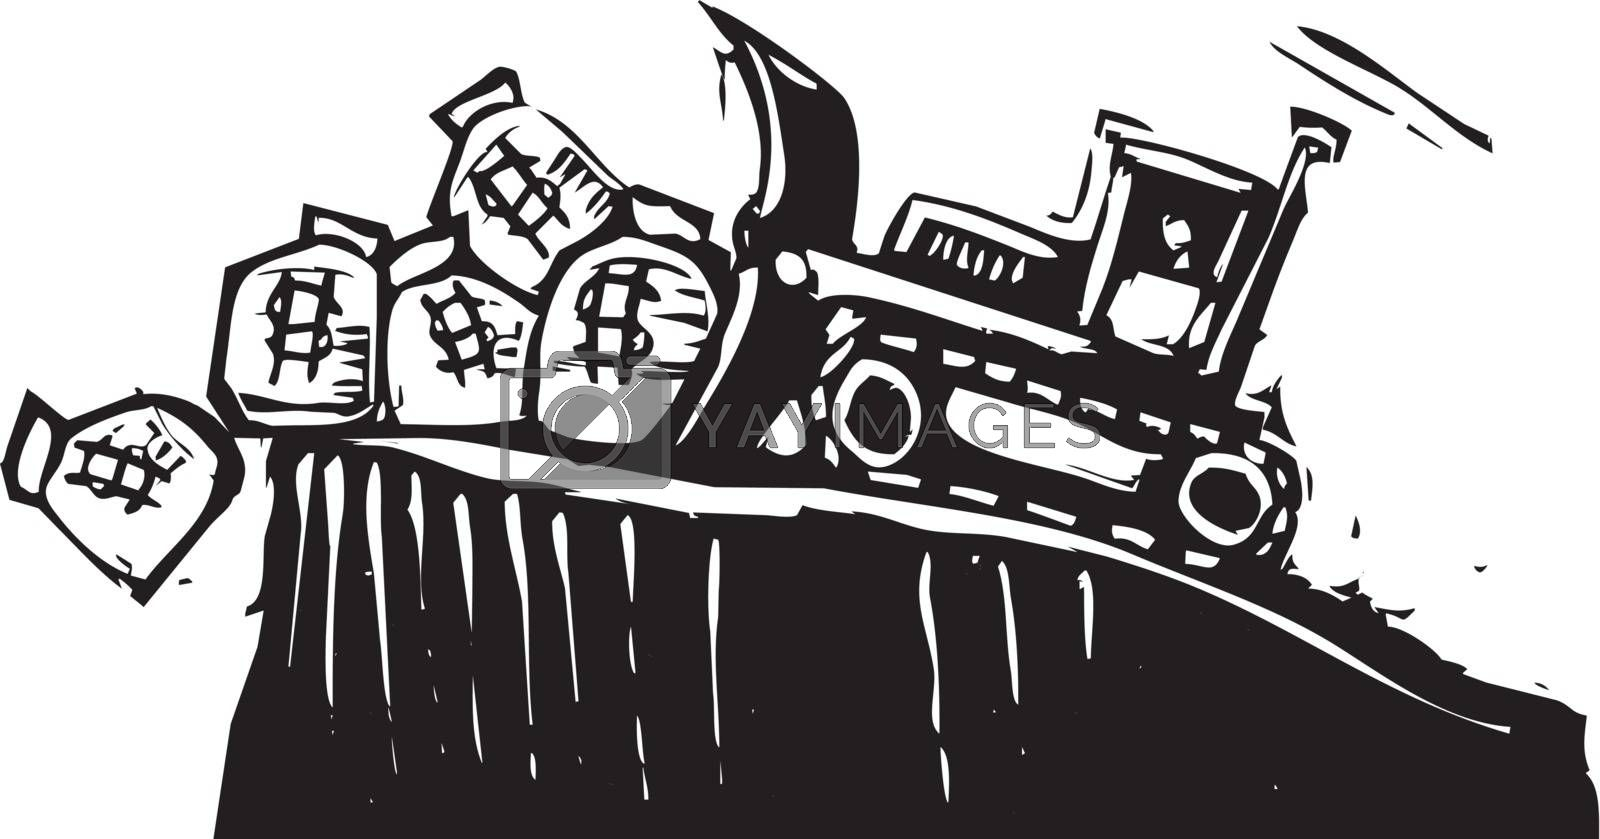 Woodcut style image of a bulldozer pushing money bags off a cliff.